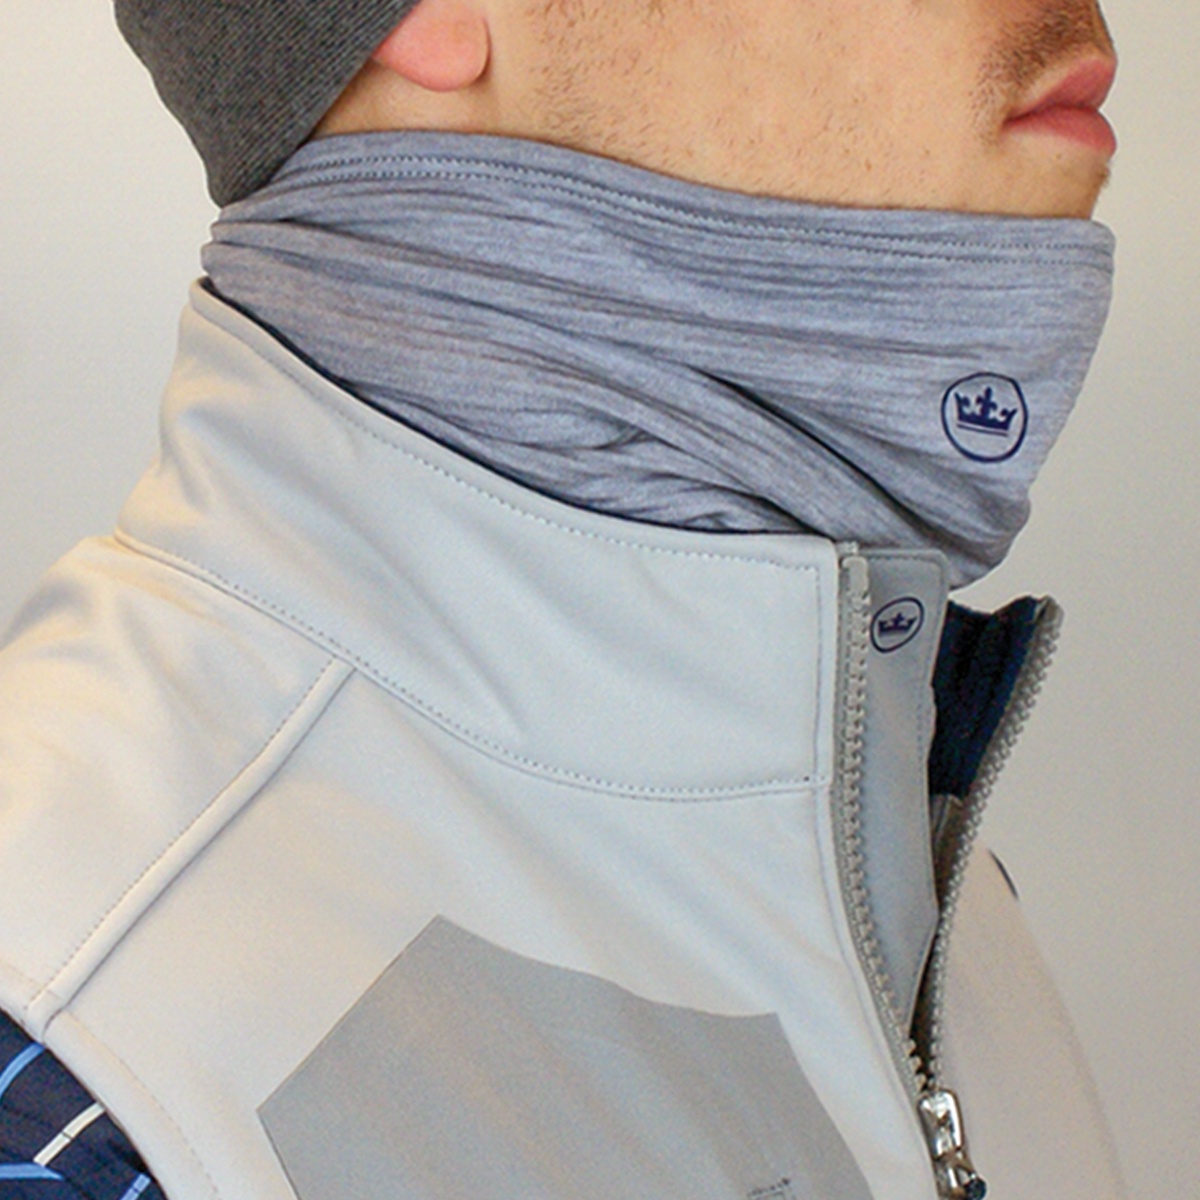 Warm up for Christmas with a free Snood worth £30